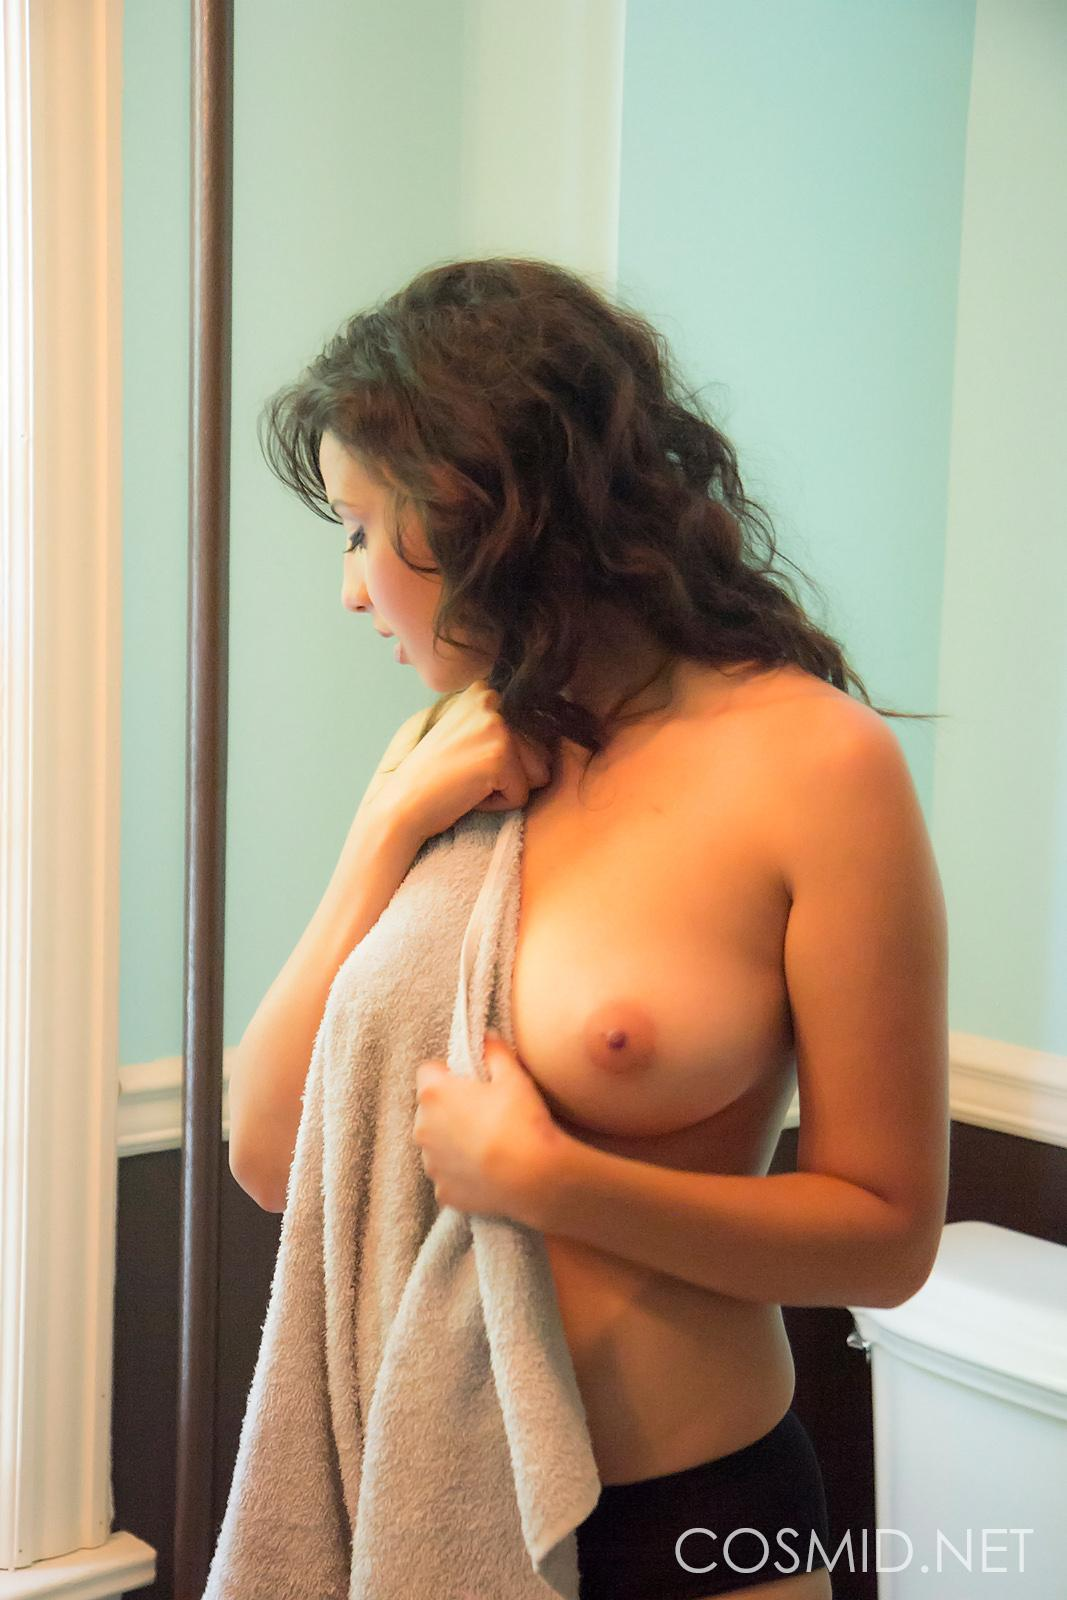 Busty Brunette Girl Alexis Shows Her Natural Boobs In The -7295